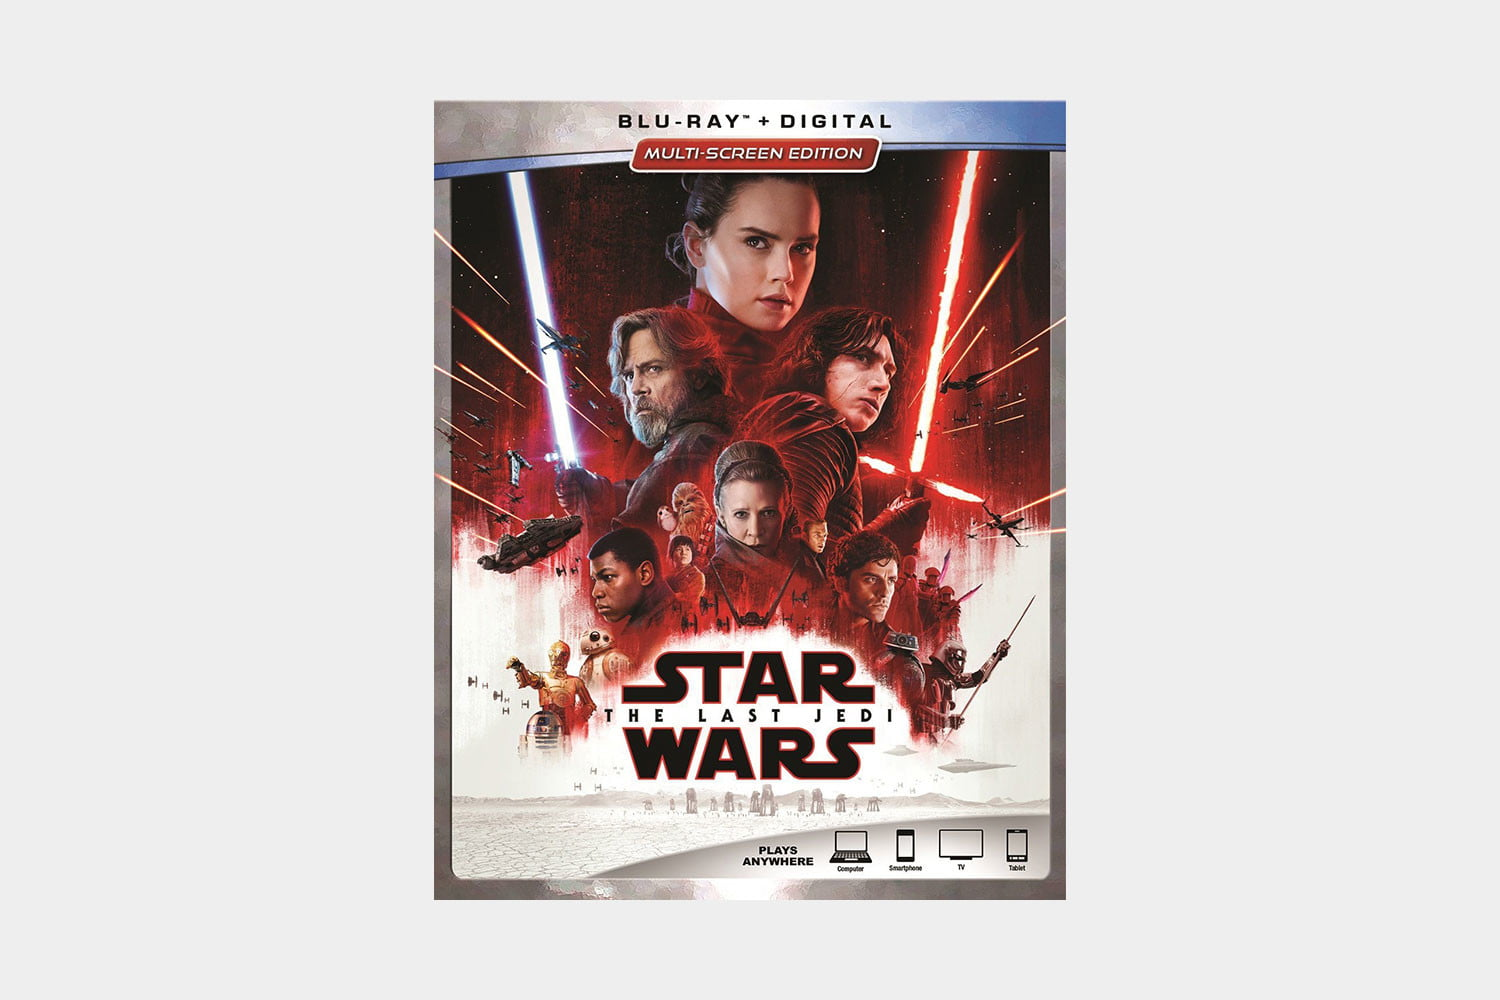 best blu ray discs show home theater star wars the last jedi cover